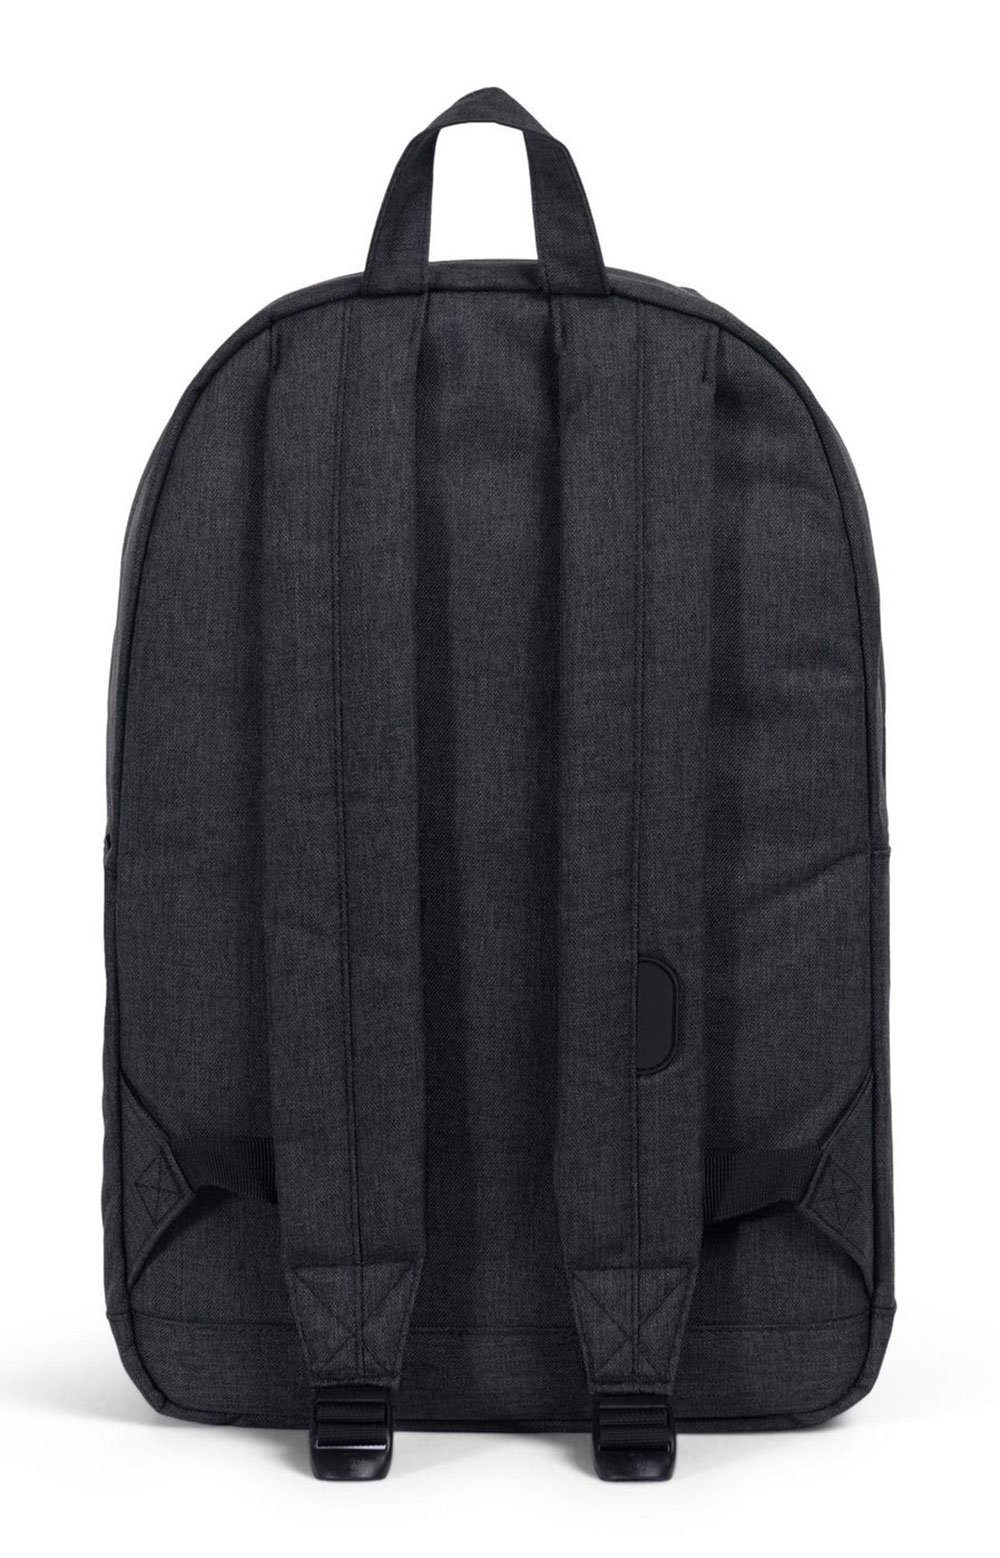 Pop Quiz Backpack - Black Crosshatch/Black 3